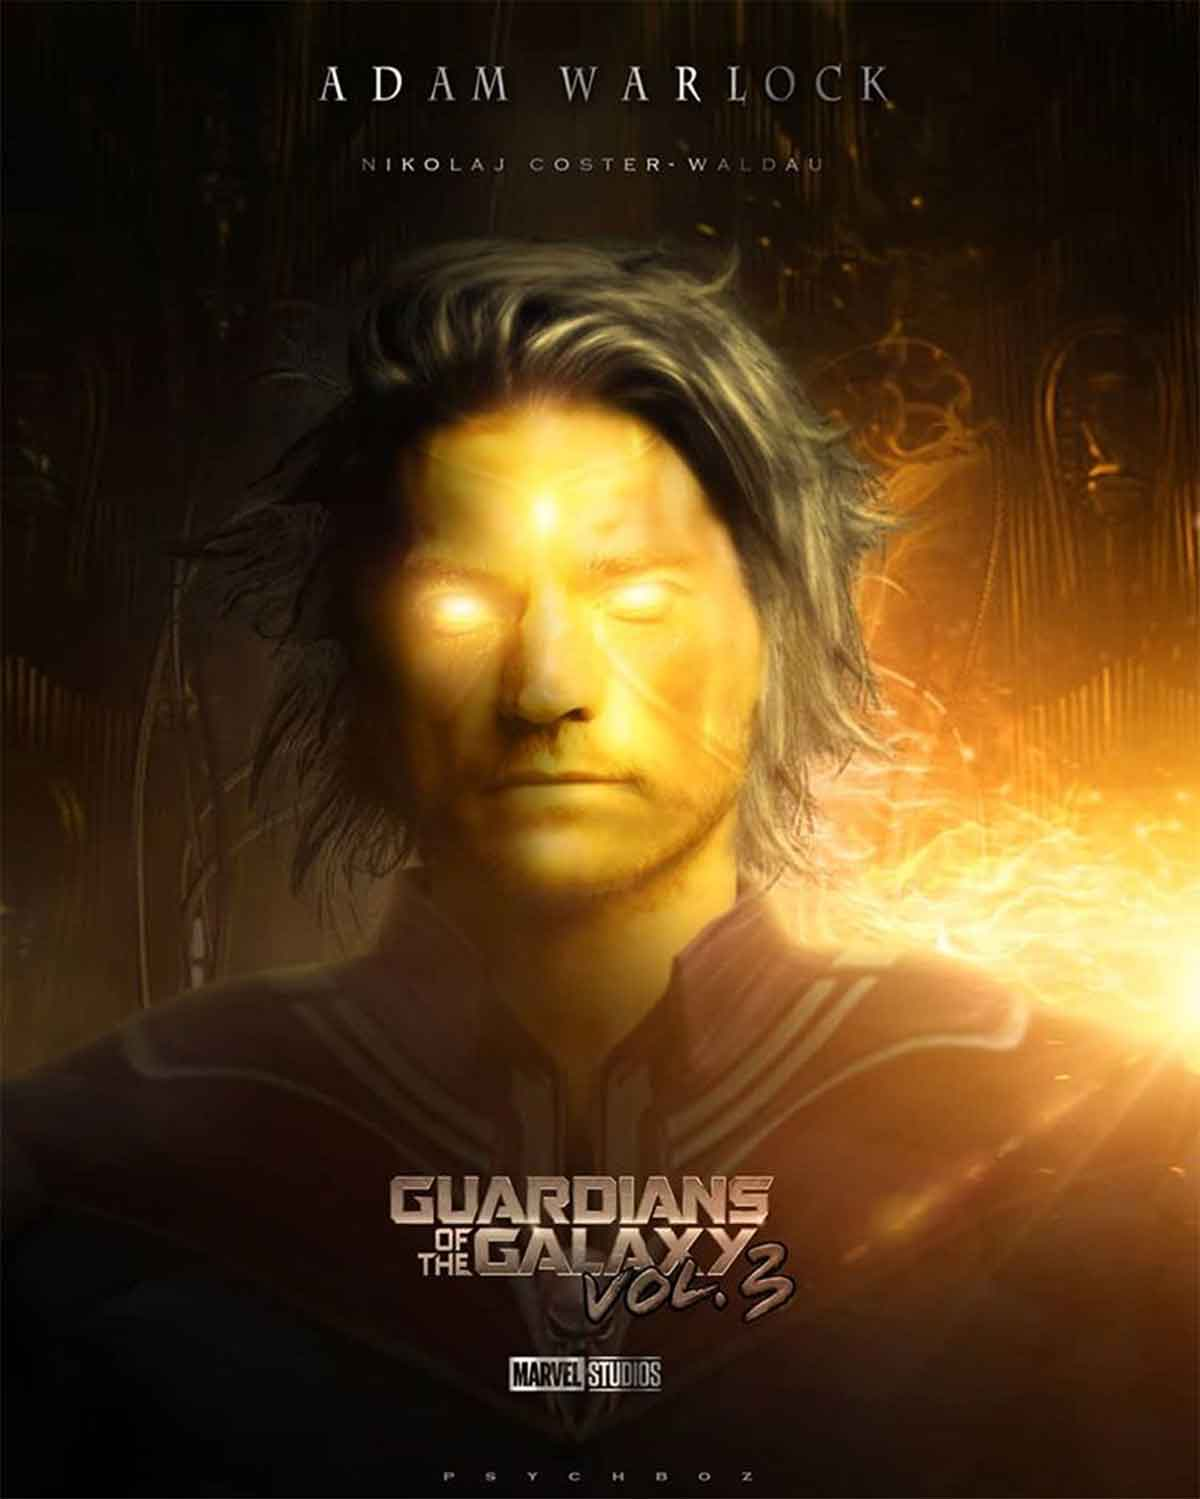 Spectacular Fan Art by Nikolaj Coster-Waldau as Adam Warlock